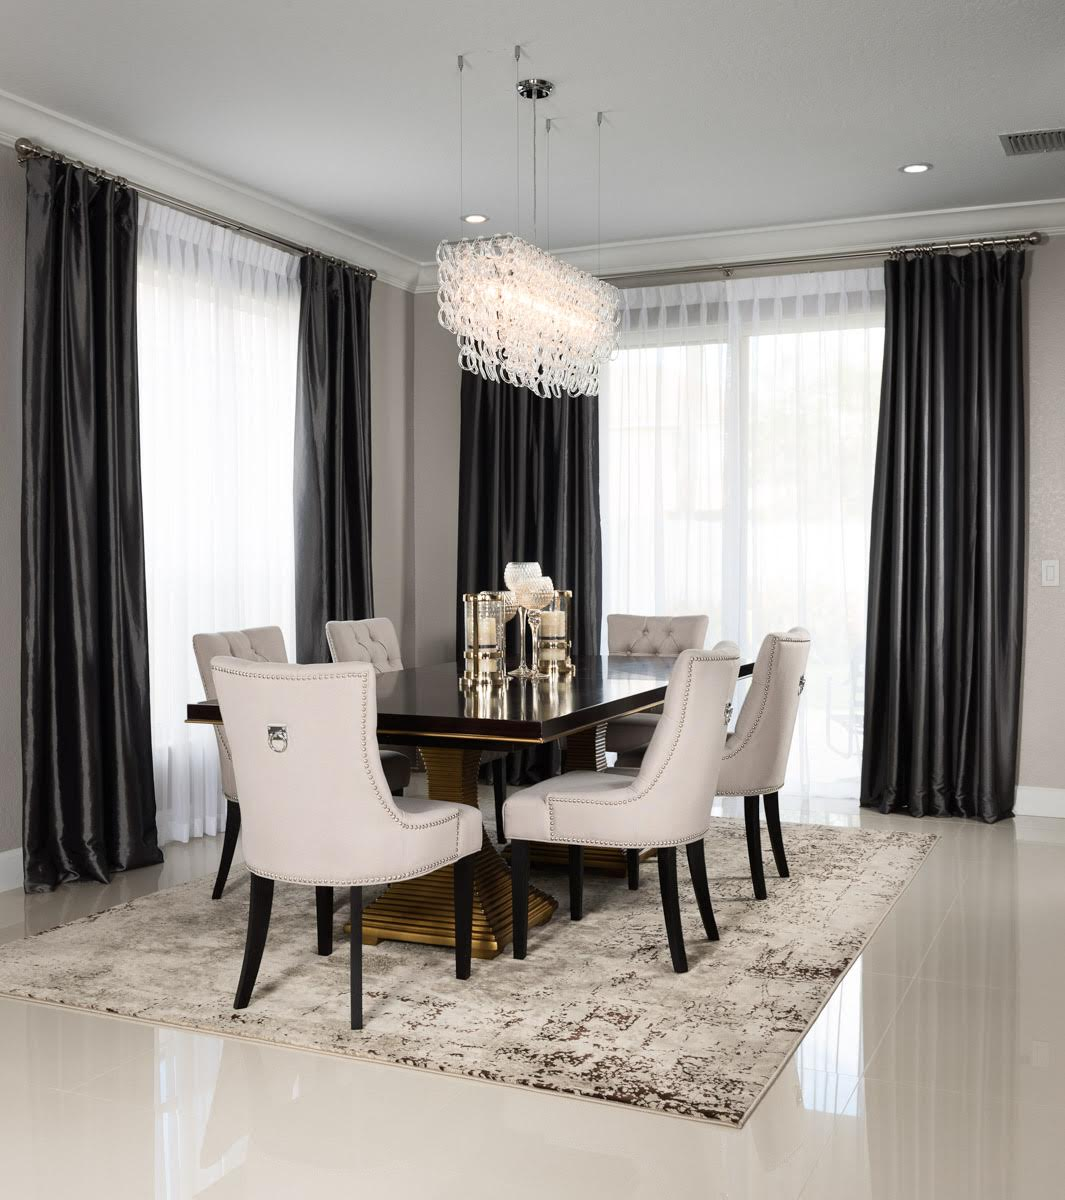 We Of Course Extended The Glam To Dining Room With A Table That Seats Up 8 And Showstopper Chandelier Took Me Forever Help Install